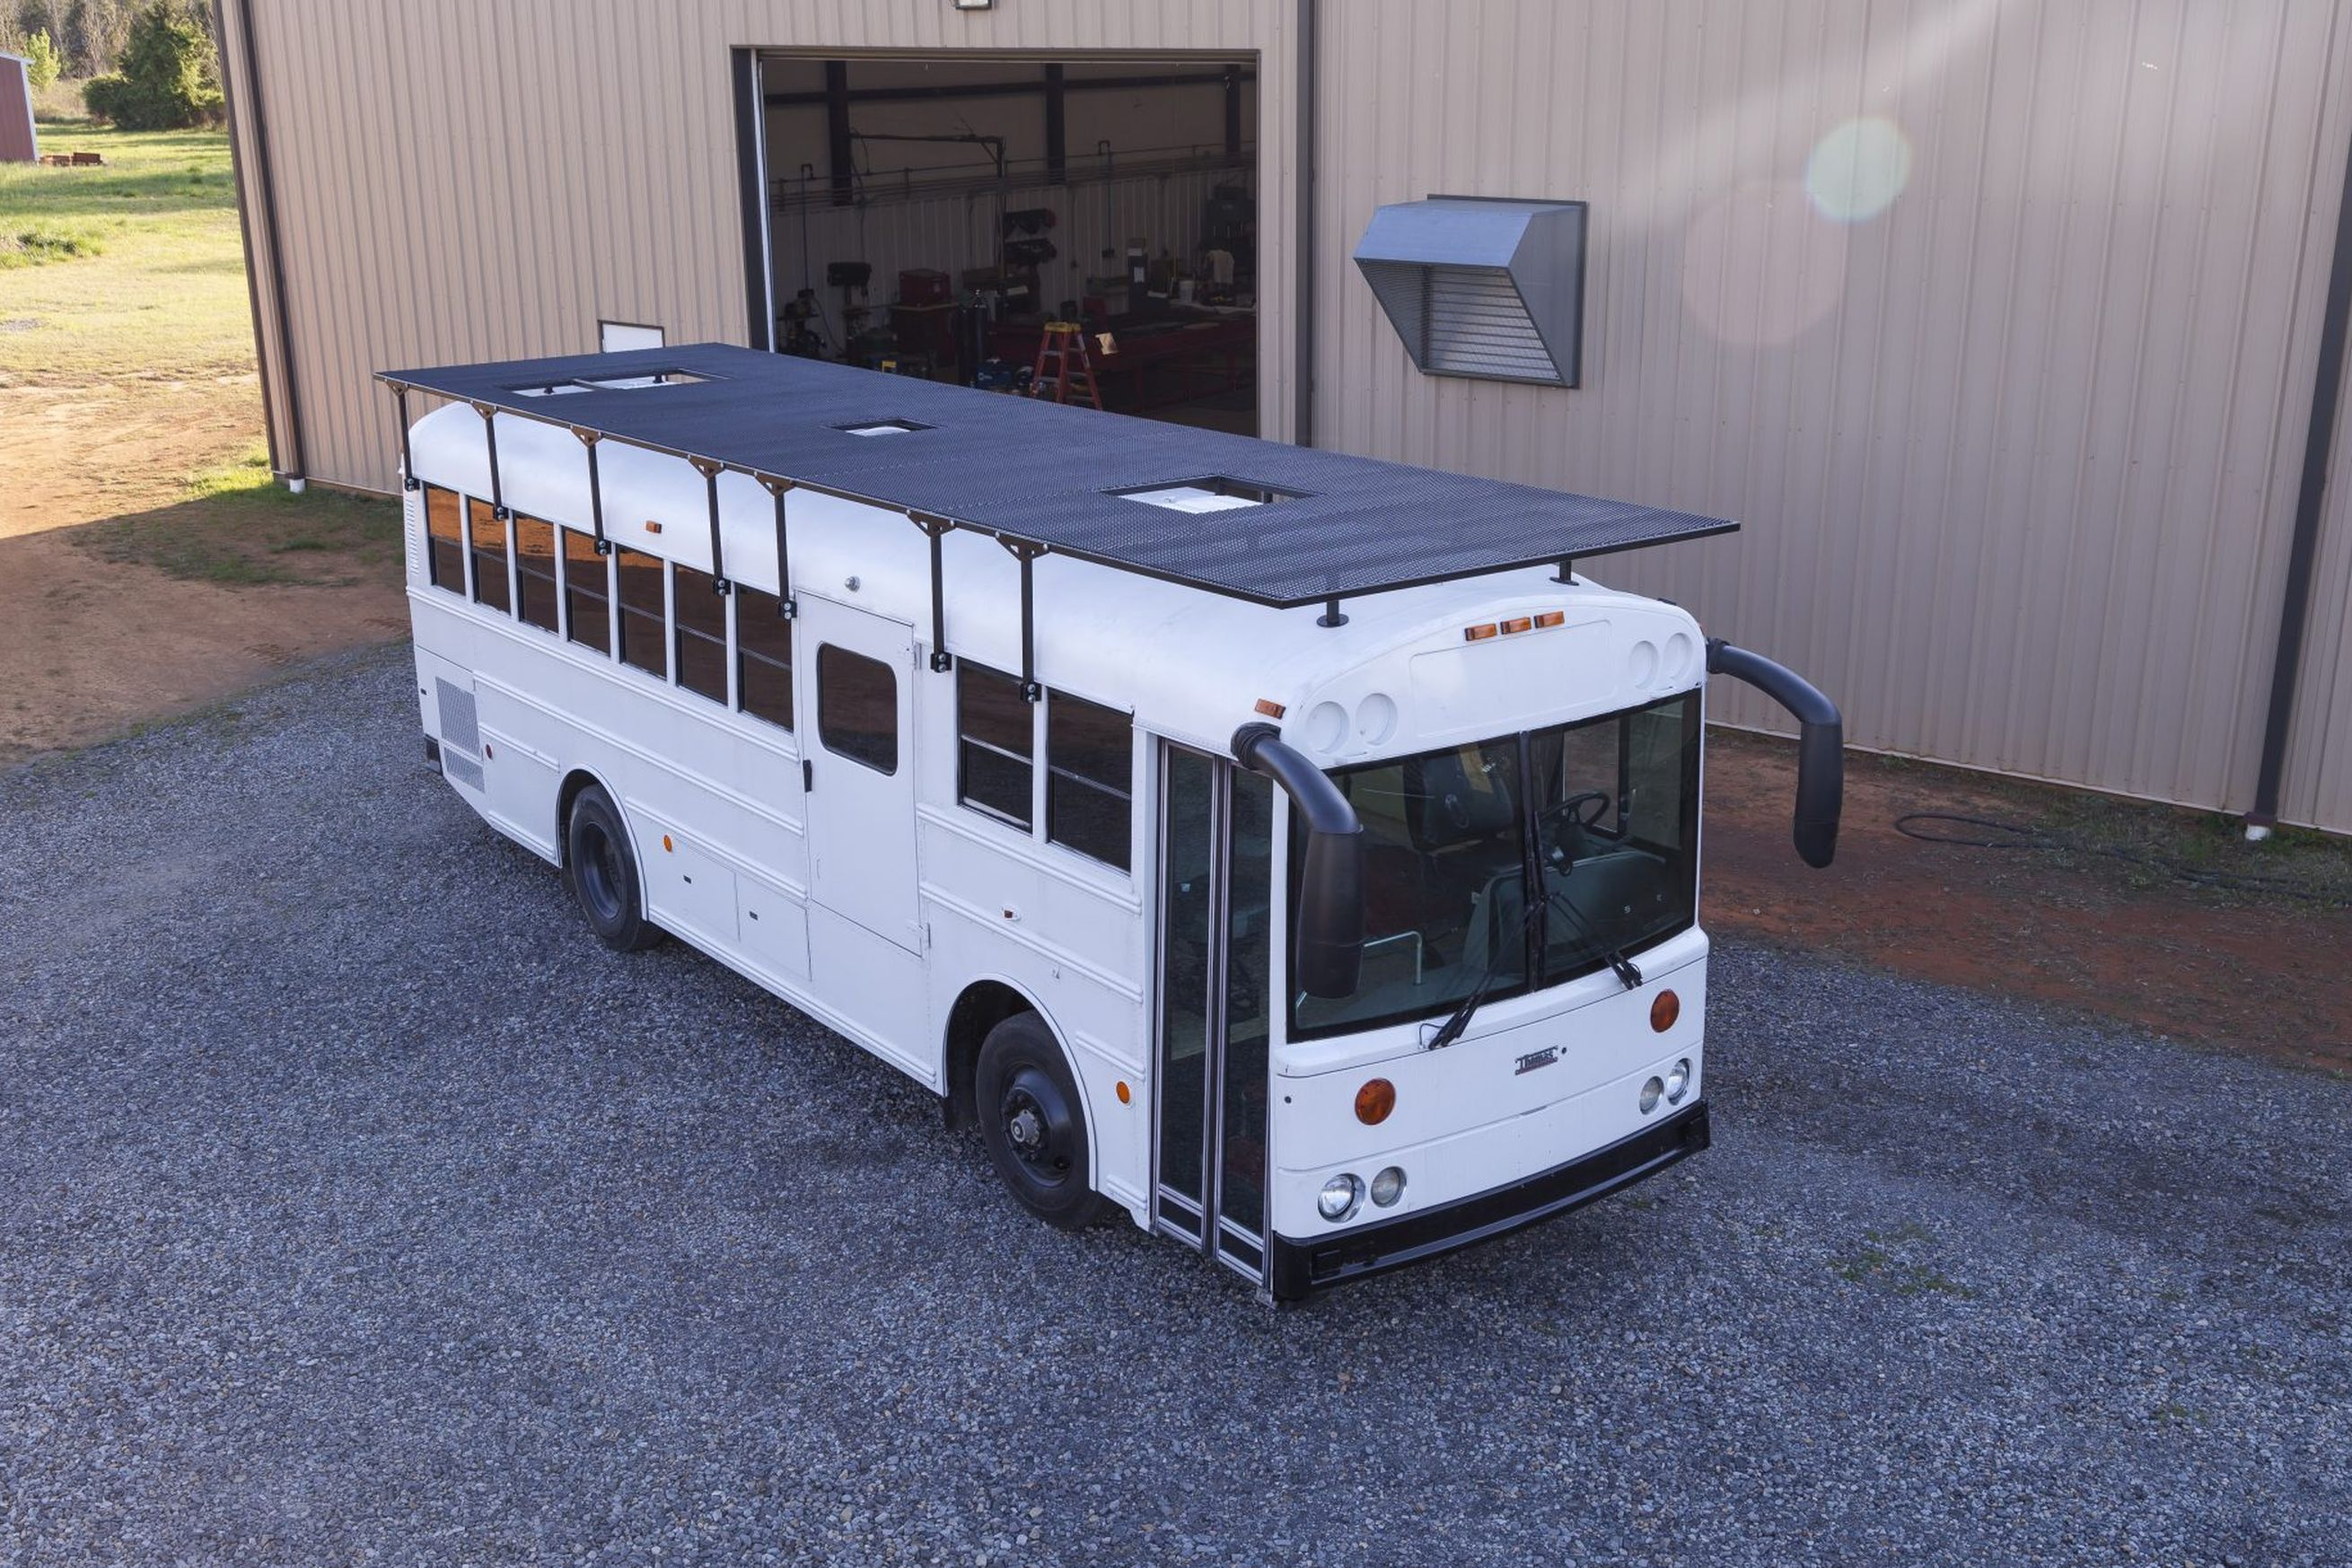 Couple Transforms Old School Bus Into Solar Powered Mobile Home